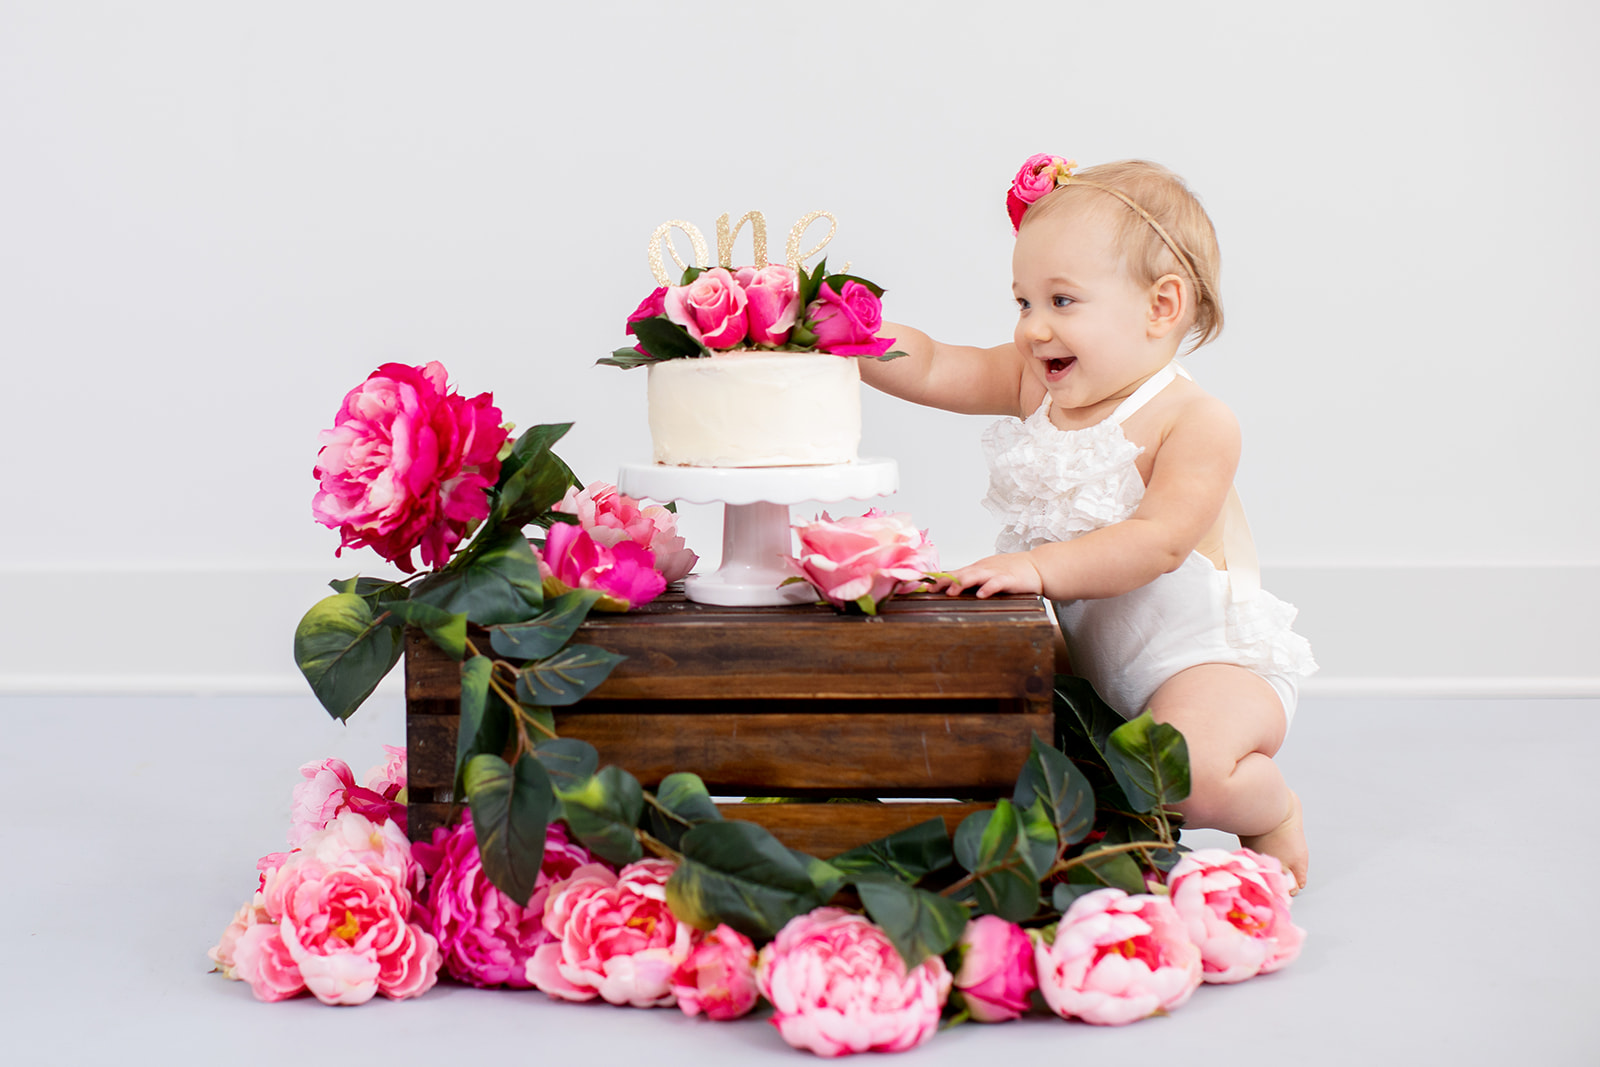 Lilas One Year Old Birthday Cake Smash Session - Image Property of www.j-dphoto.com